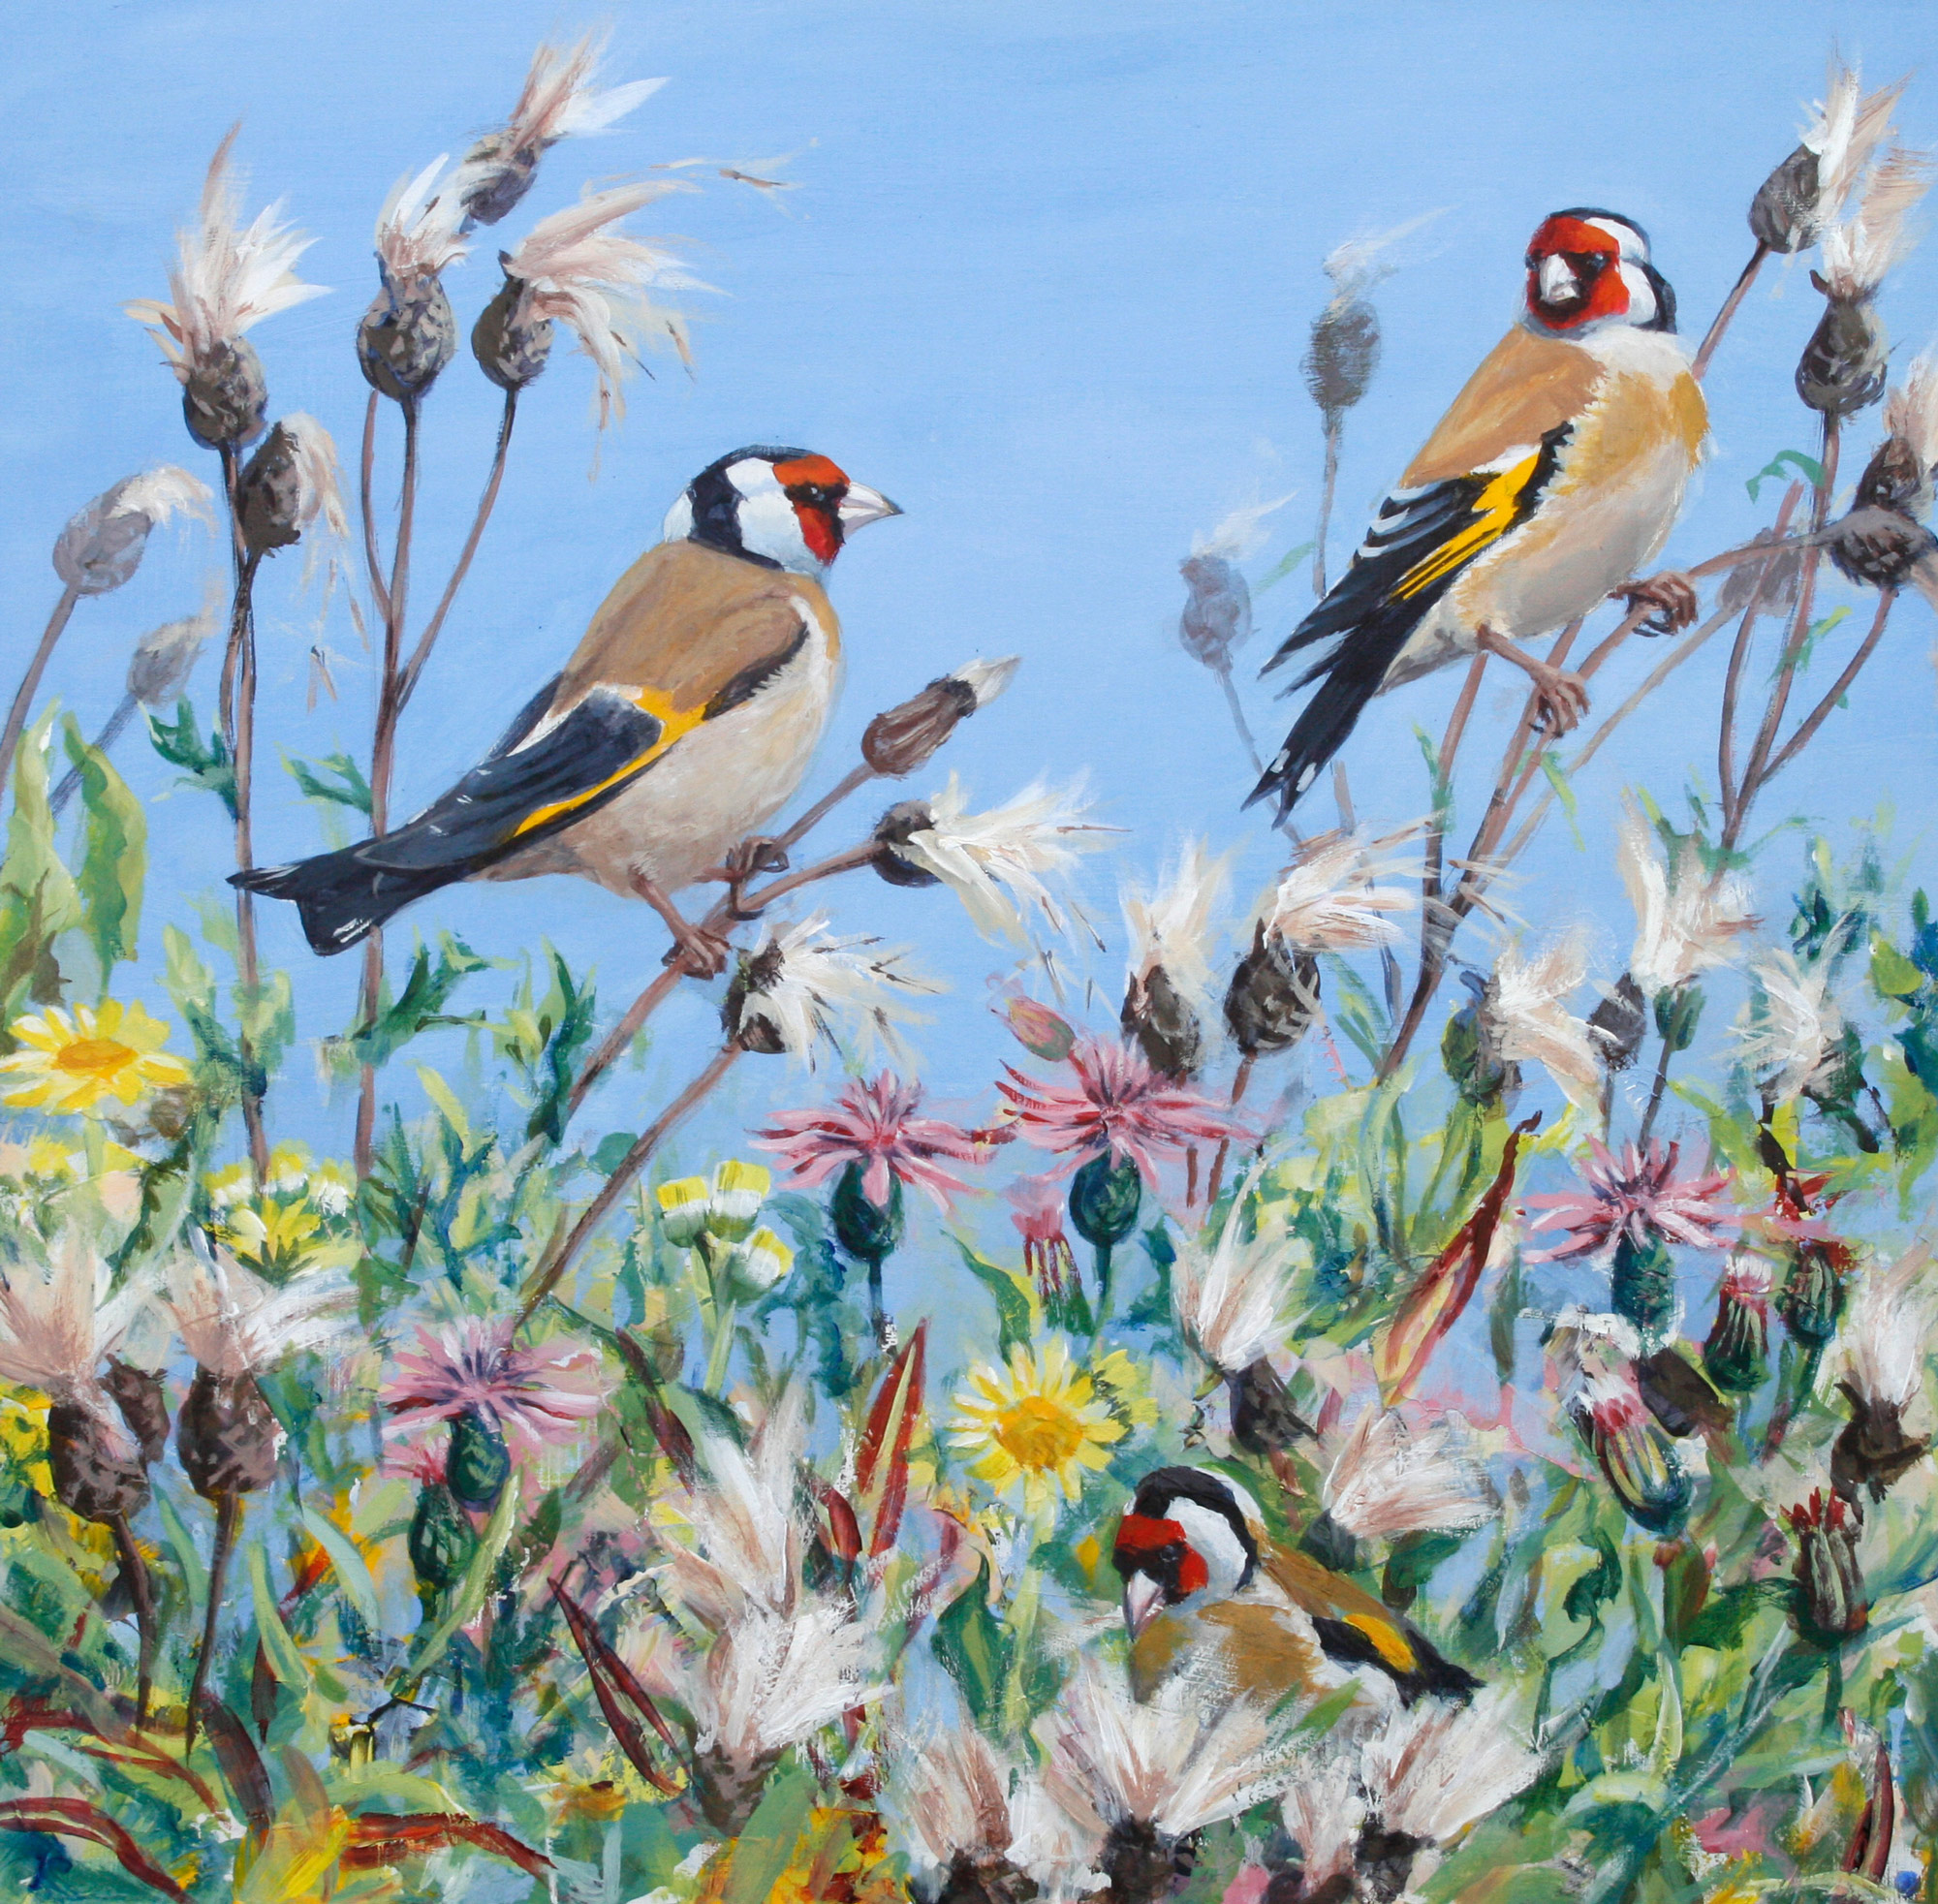 Jackie Garner | Goldies and Thistles | Acrylic | 40x39cm framed | £540